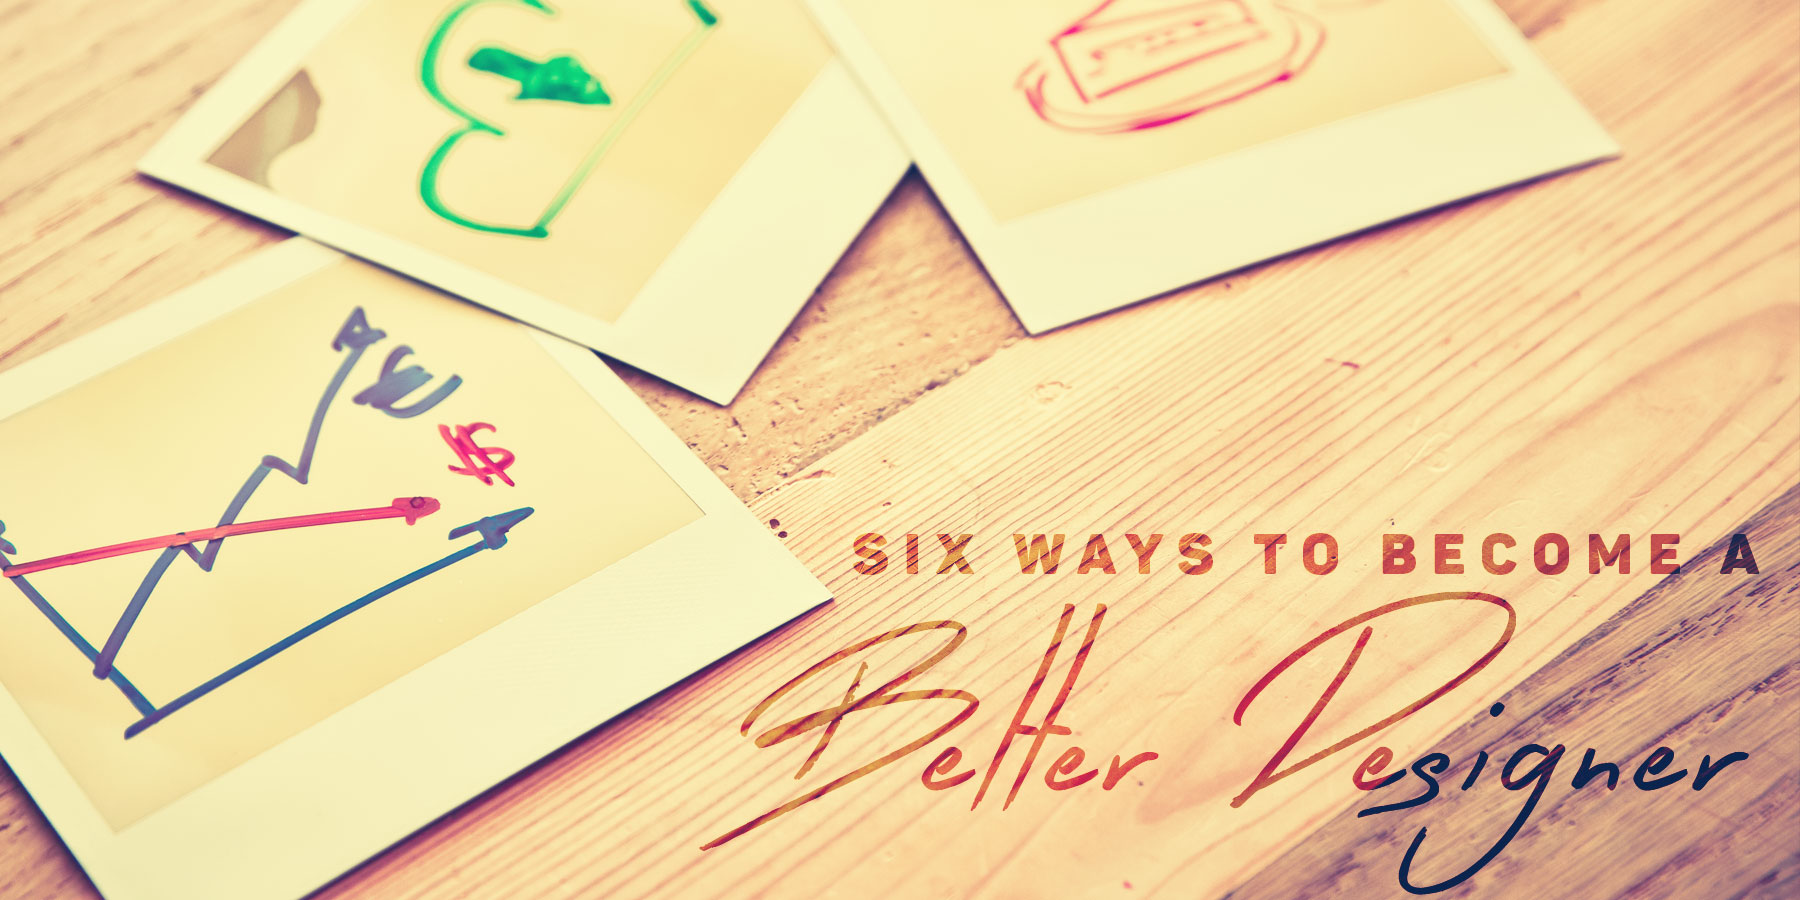 six-ways-to-become-a-better-designer